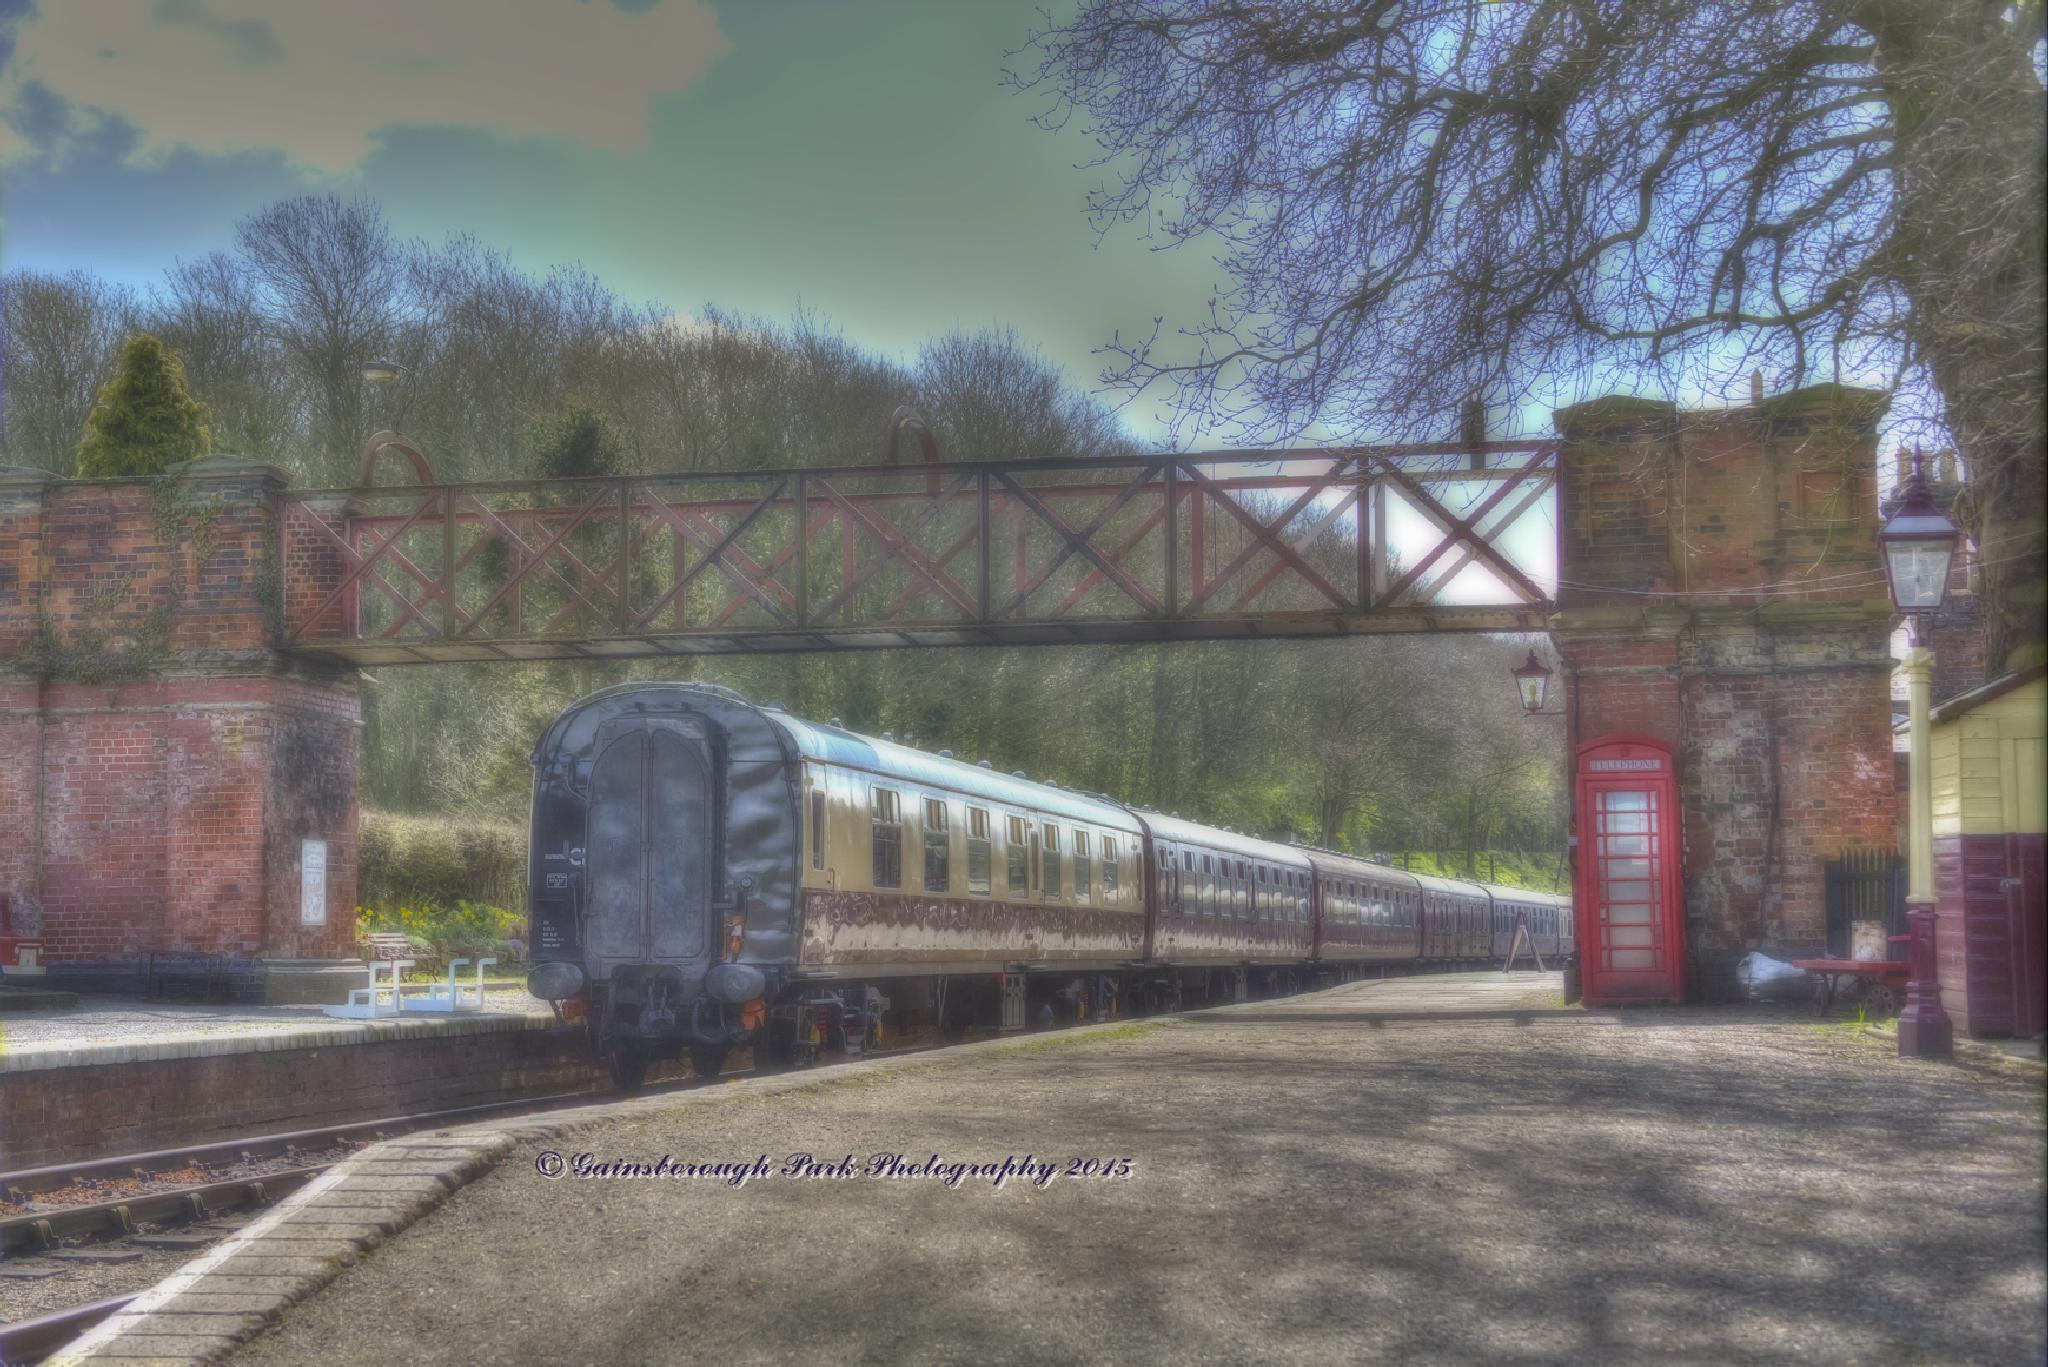 The train now leaving…….. by Gainsborough Park Photography